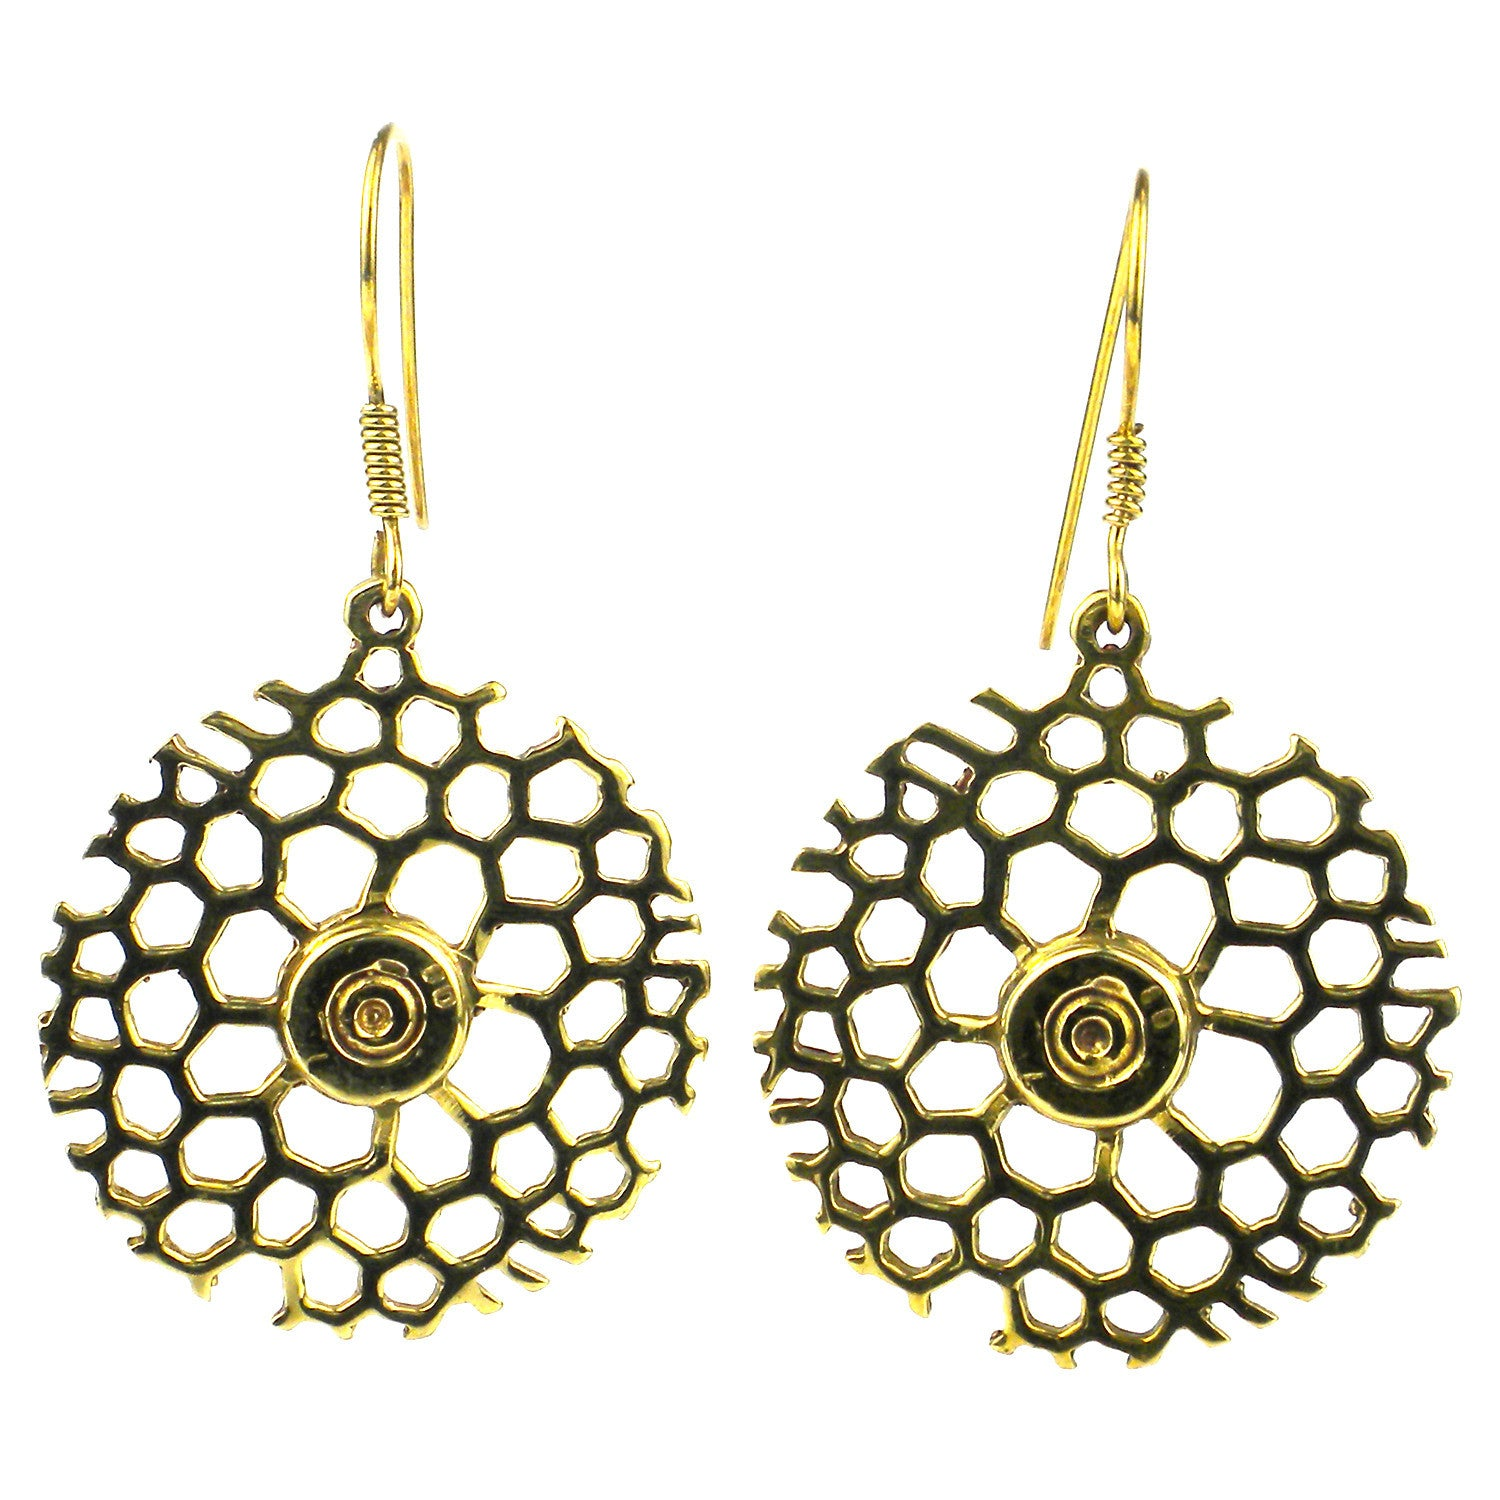 Beehive Bomb Casing Earrings - Craftworks Cambodia (Fair Trade)